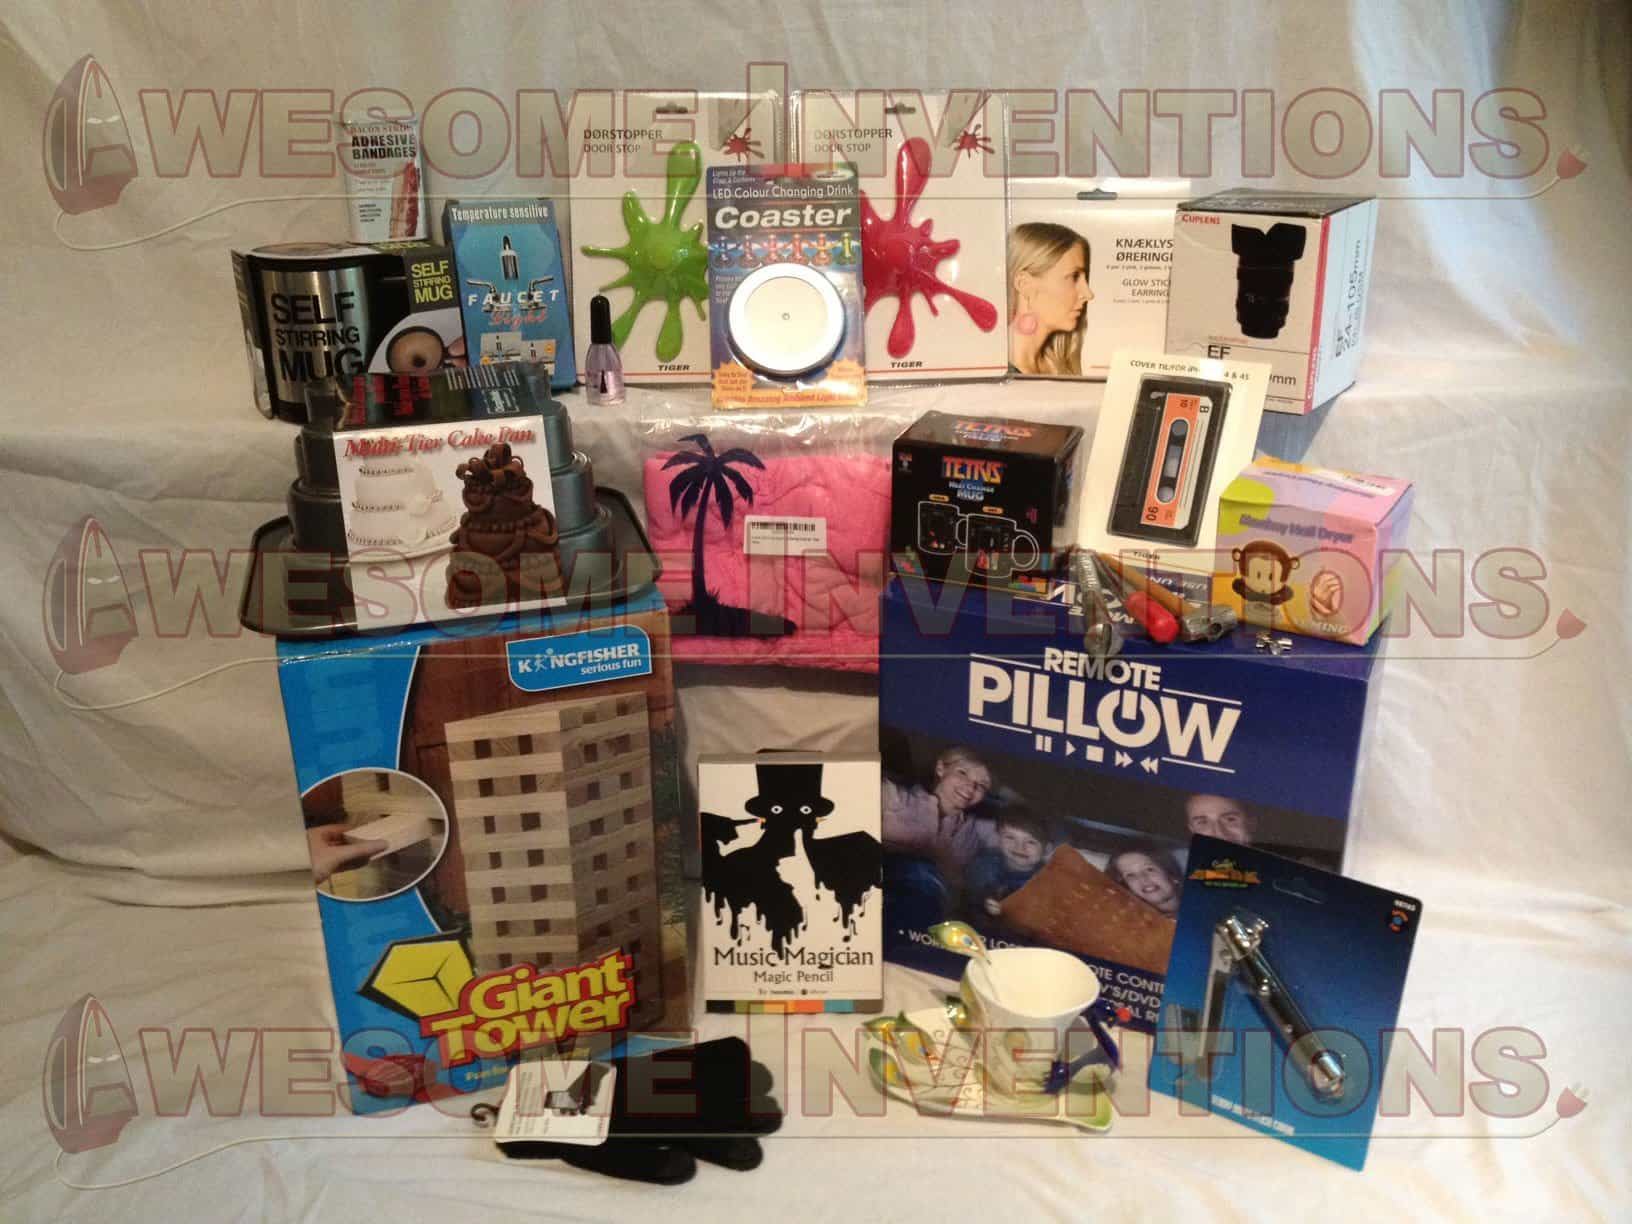 Awesome Inventions 1 Million Facebook Likes Giveaway